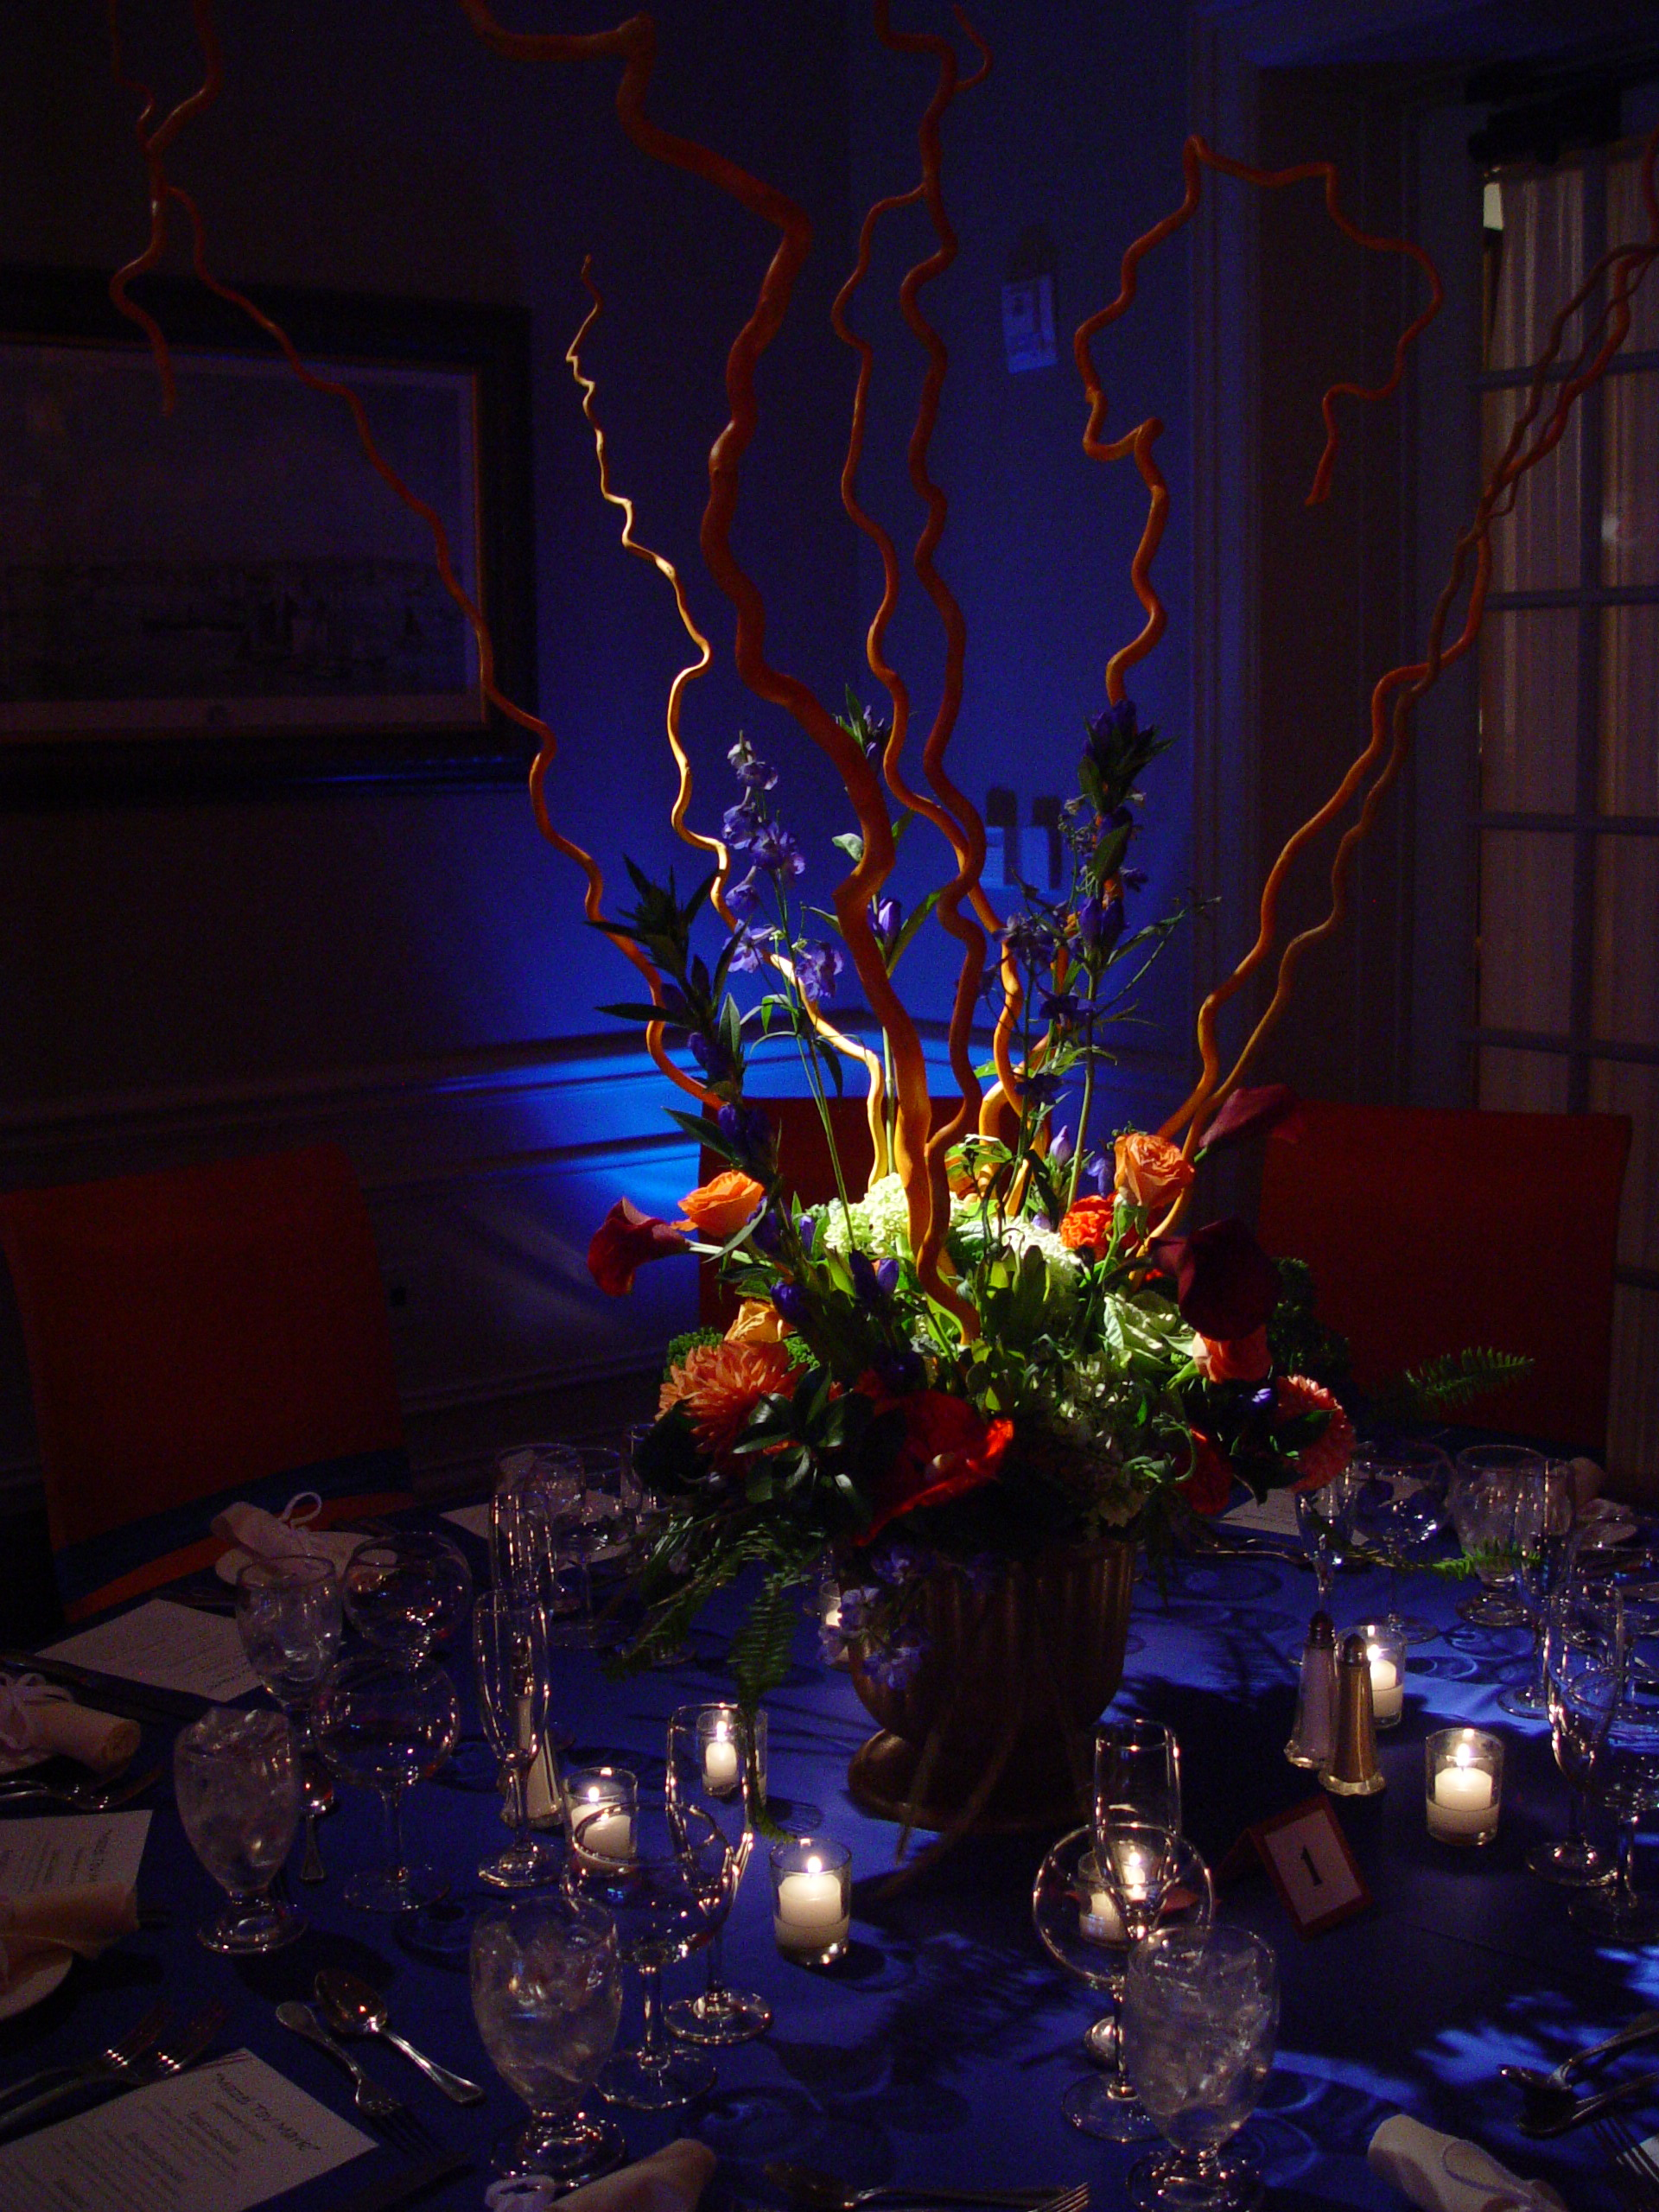 NJ+NY+PA+centerpiece+rental+decorations+party+eggsotic+events.jpg